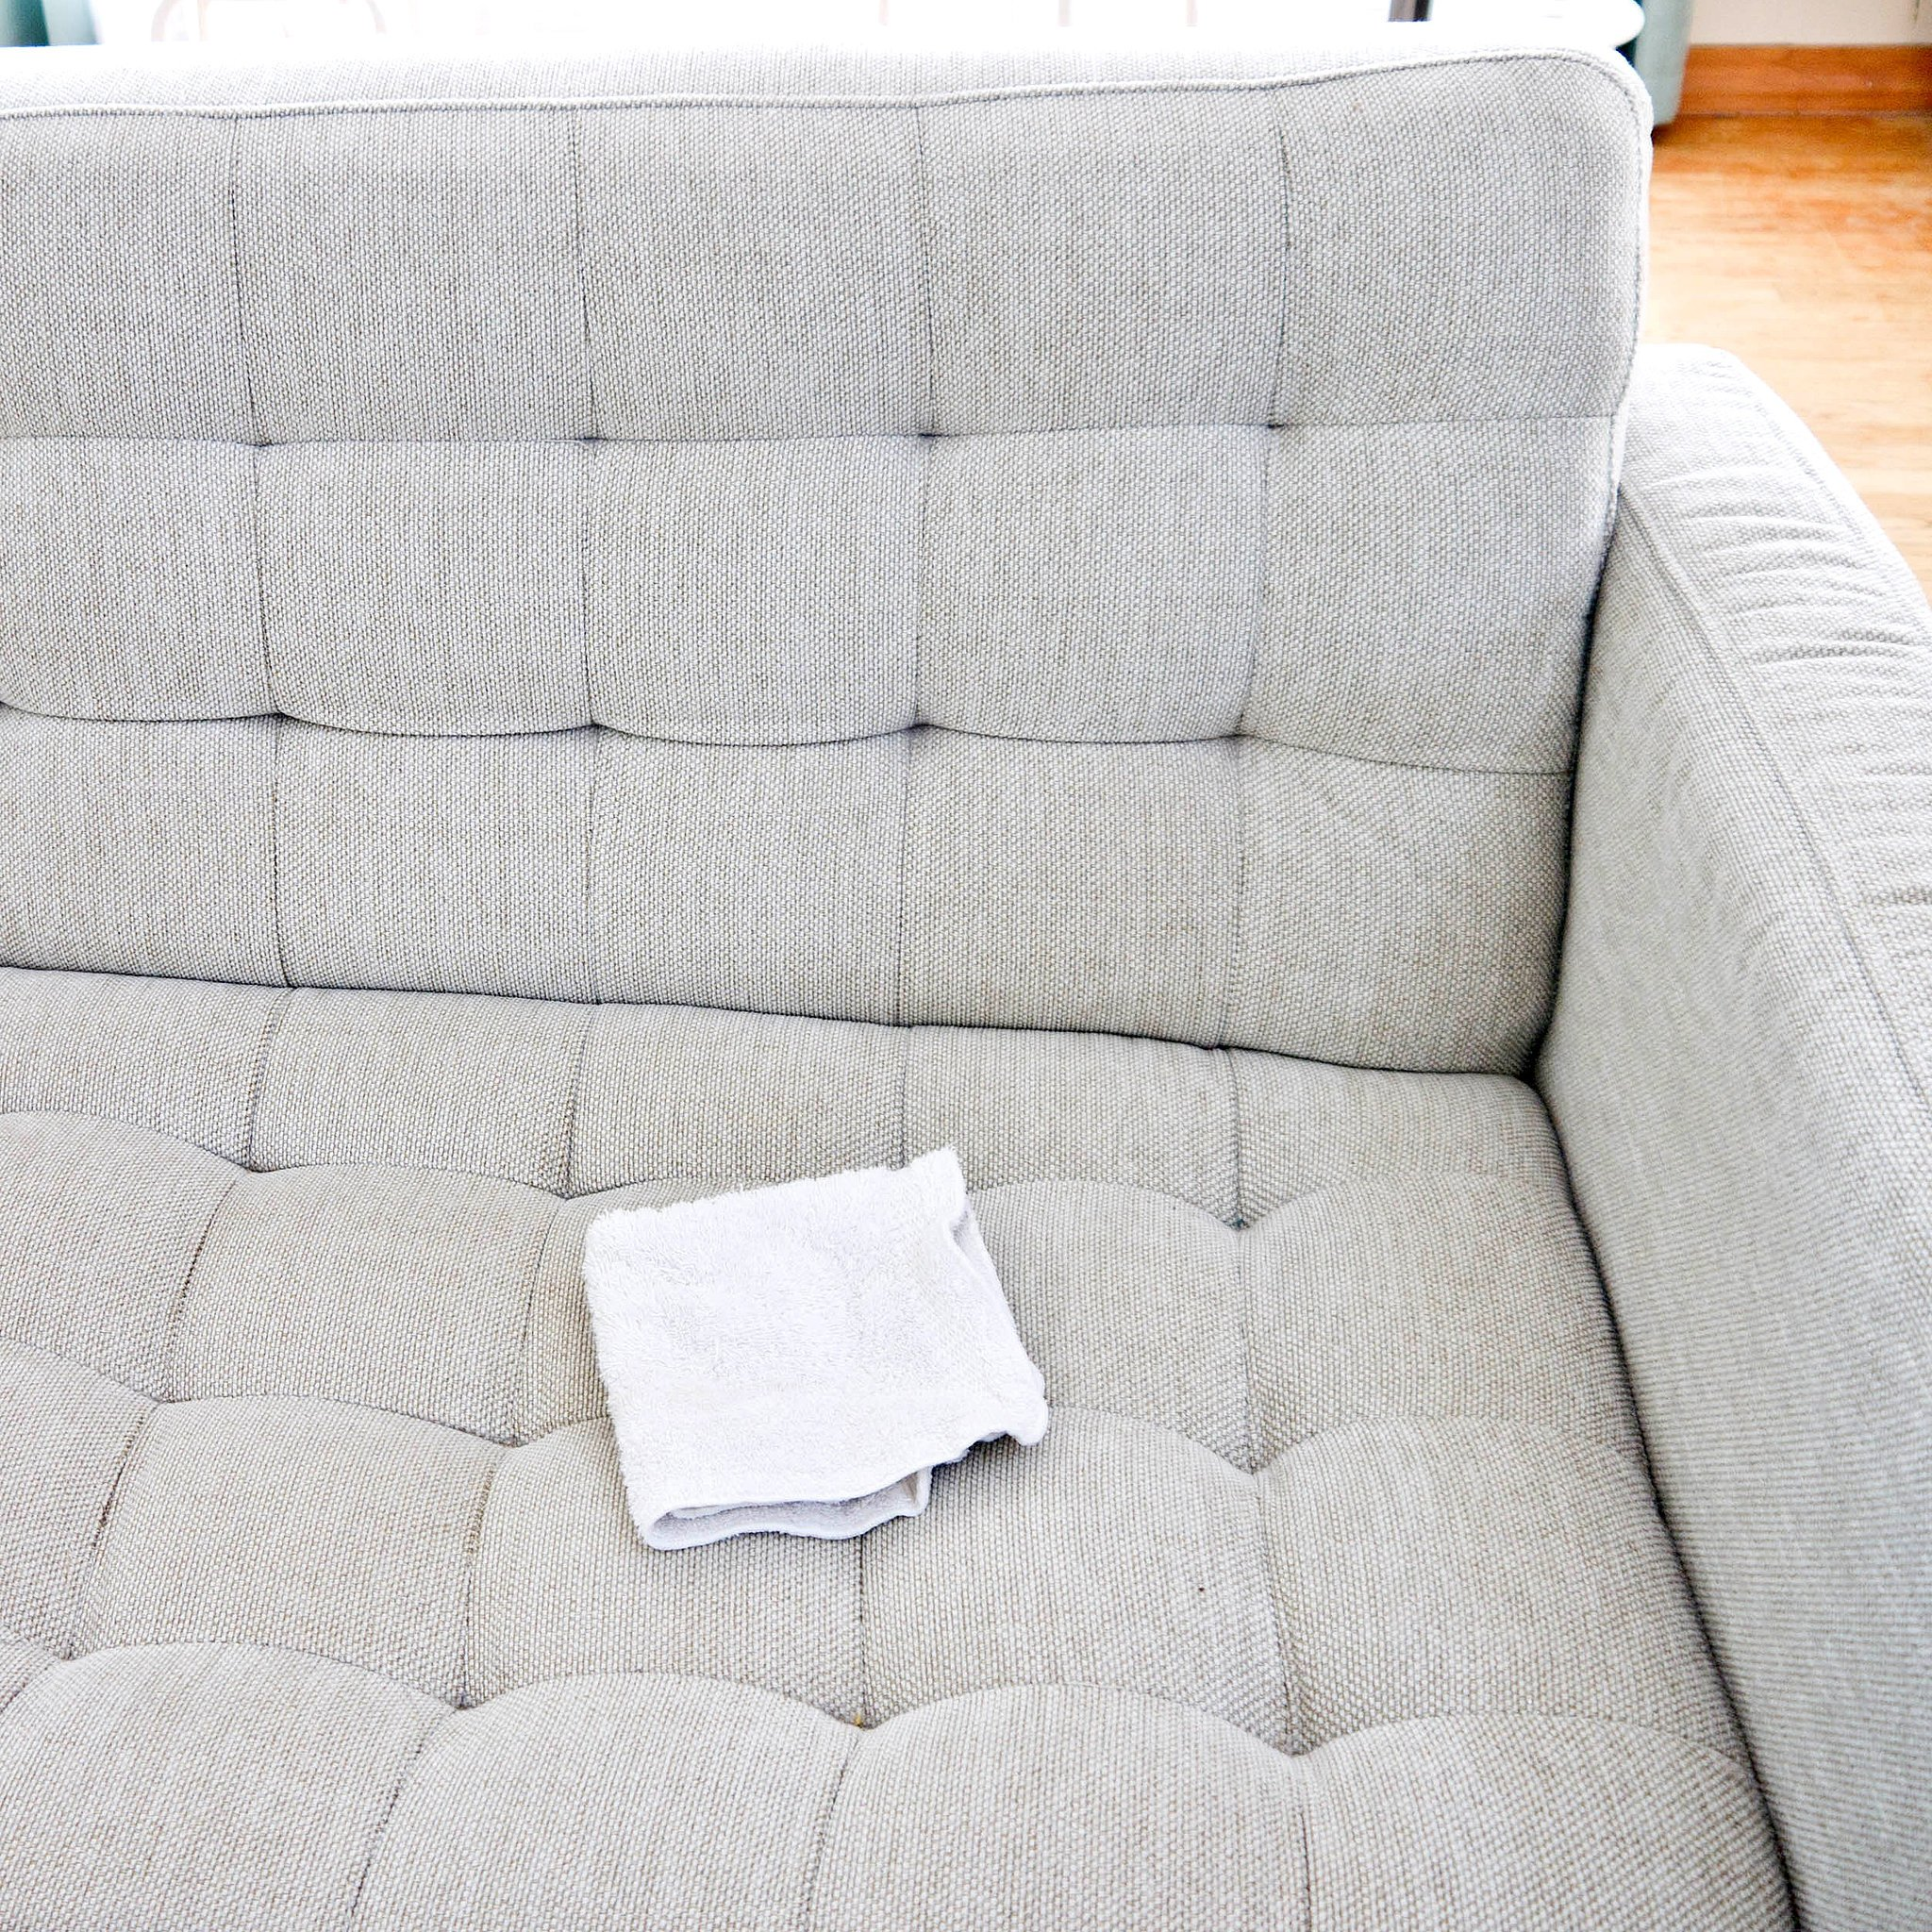 How to Clean a Lounge Suite